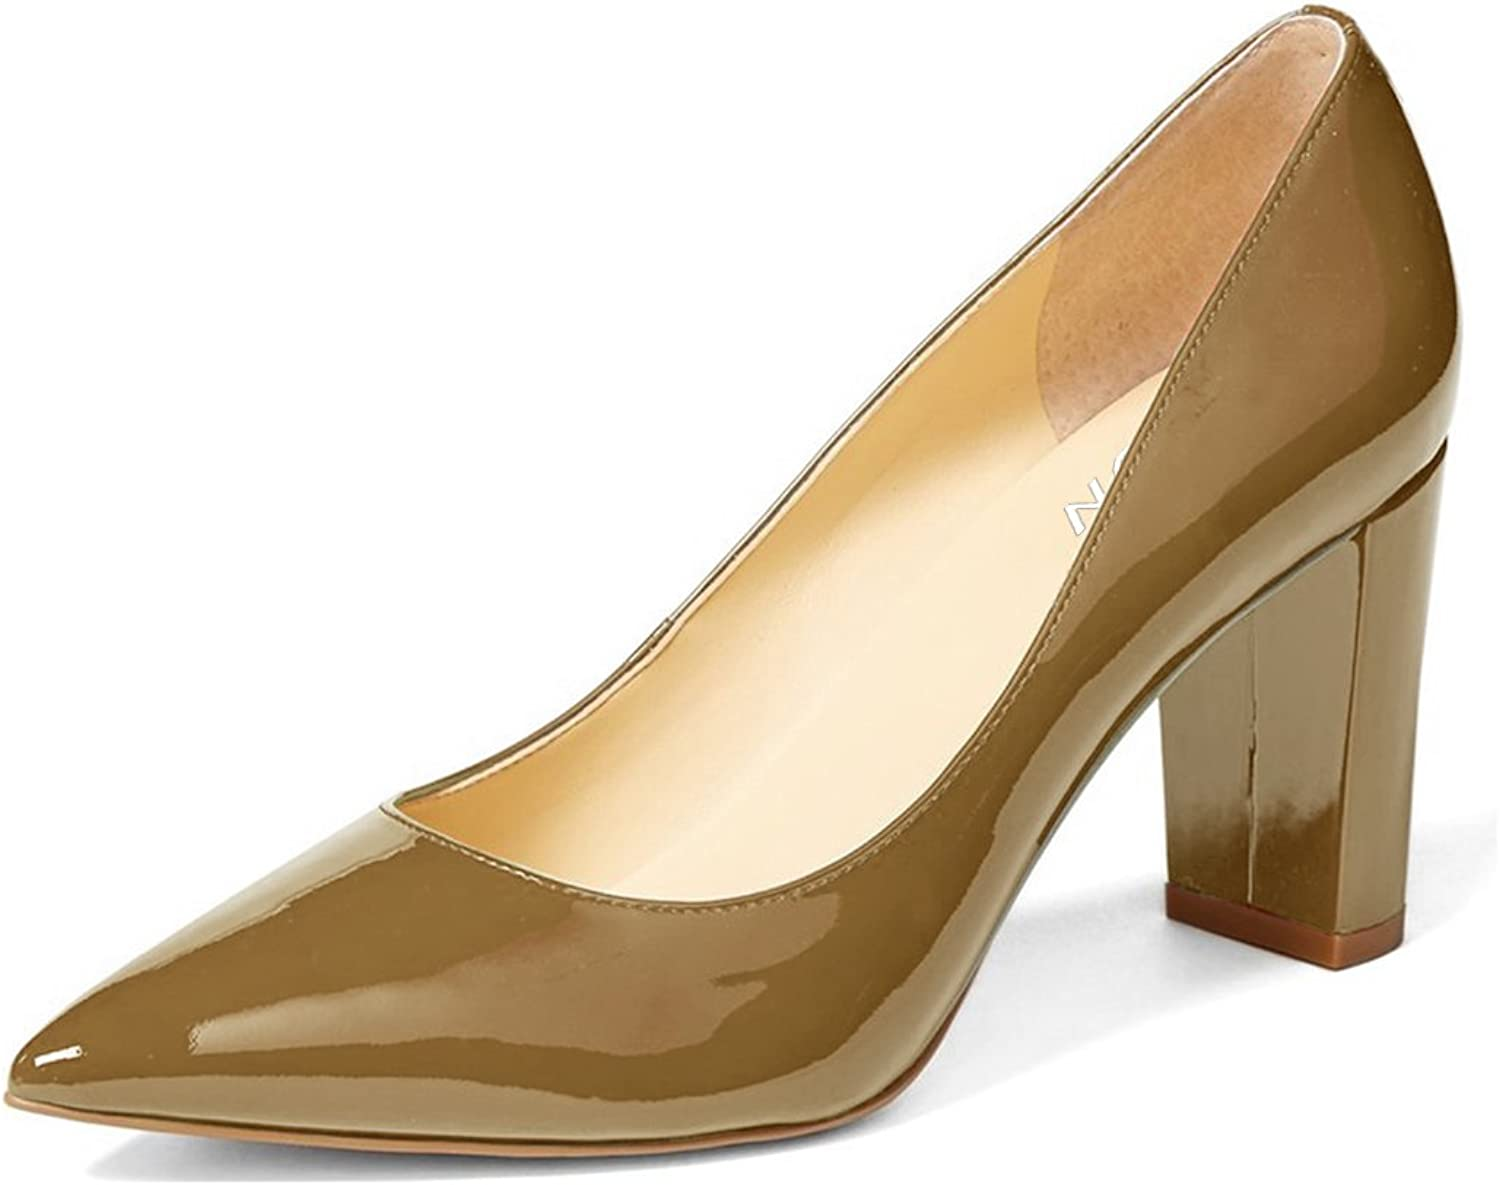 YDN Women's Classic Pointy Toe OL Pumps Slip-on Patent Leather Block Heel Dress shoes